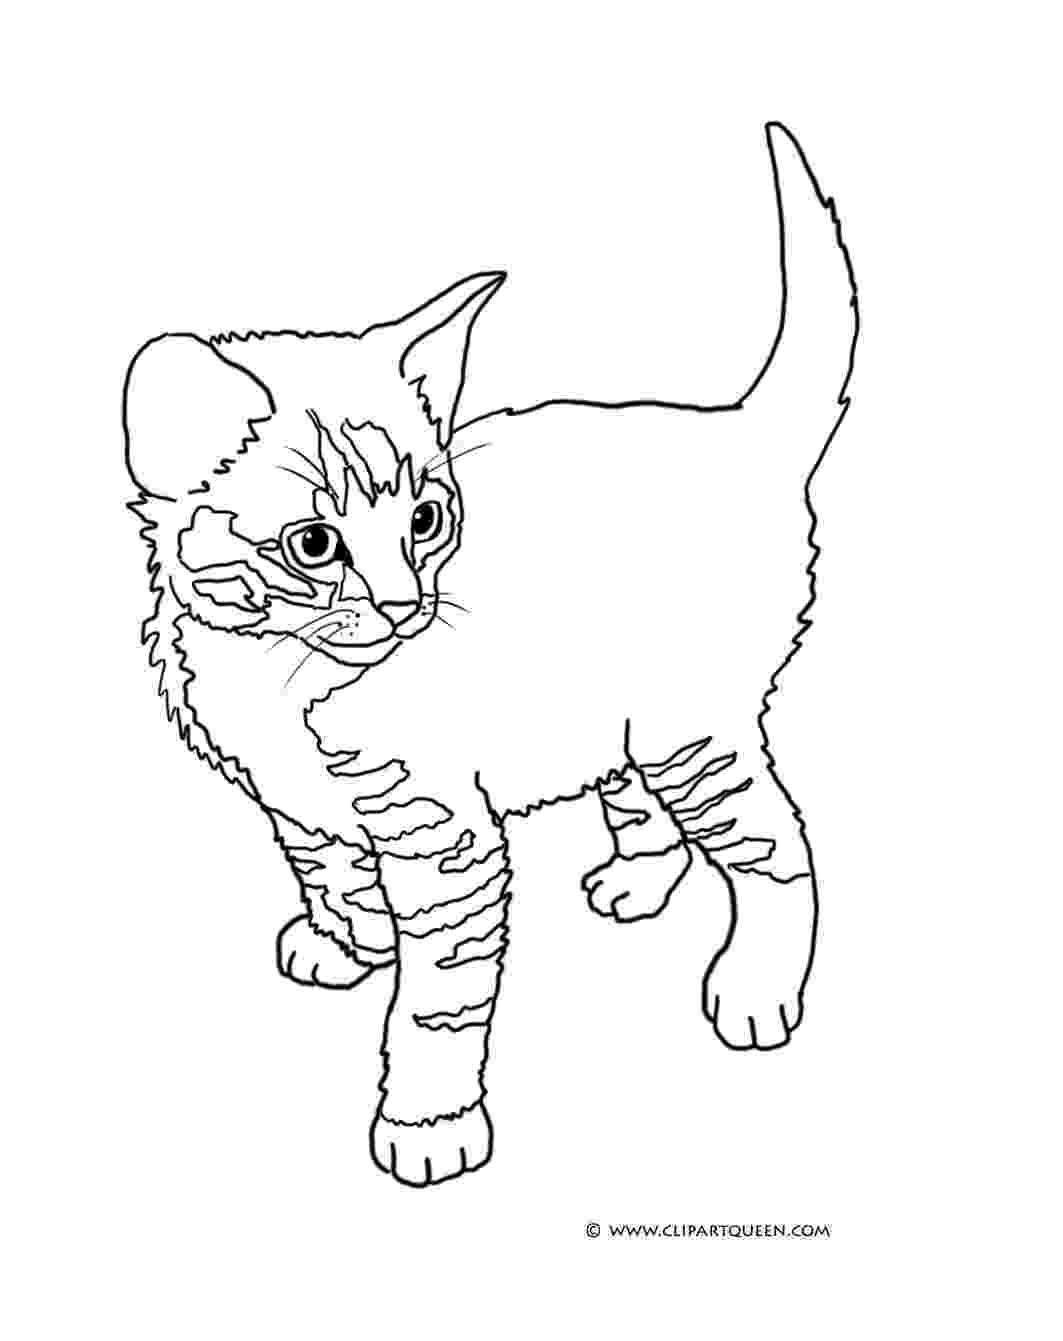 cat coloring sheets cute cat coloring pages to download and print for free coloring sheets cat